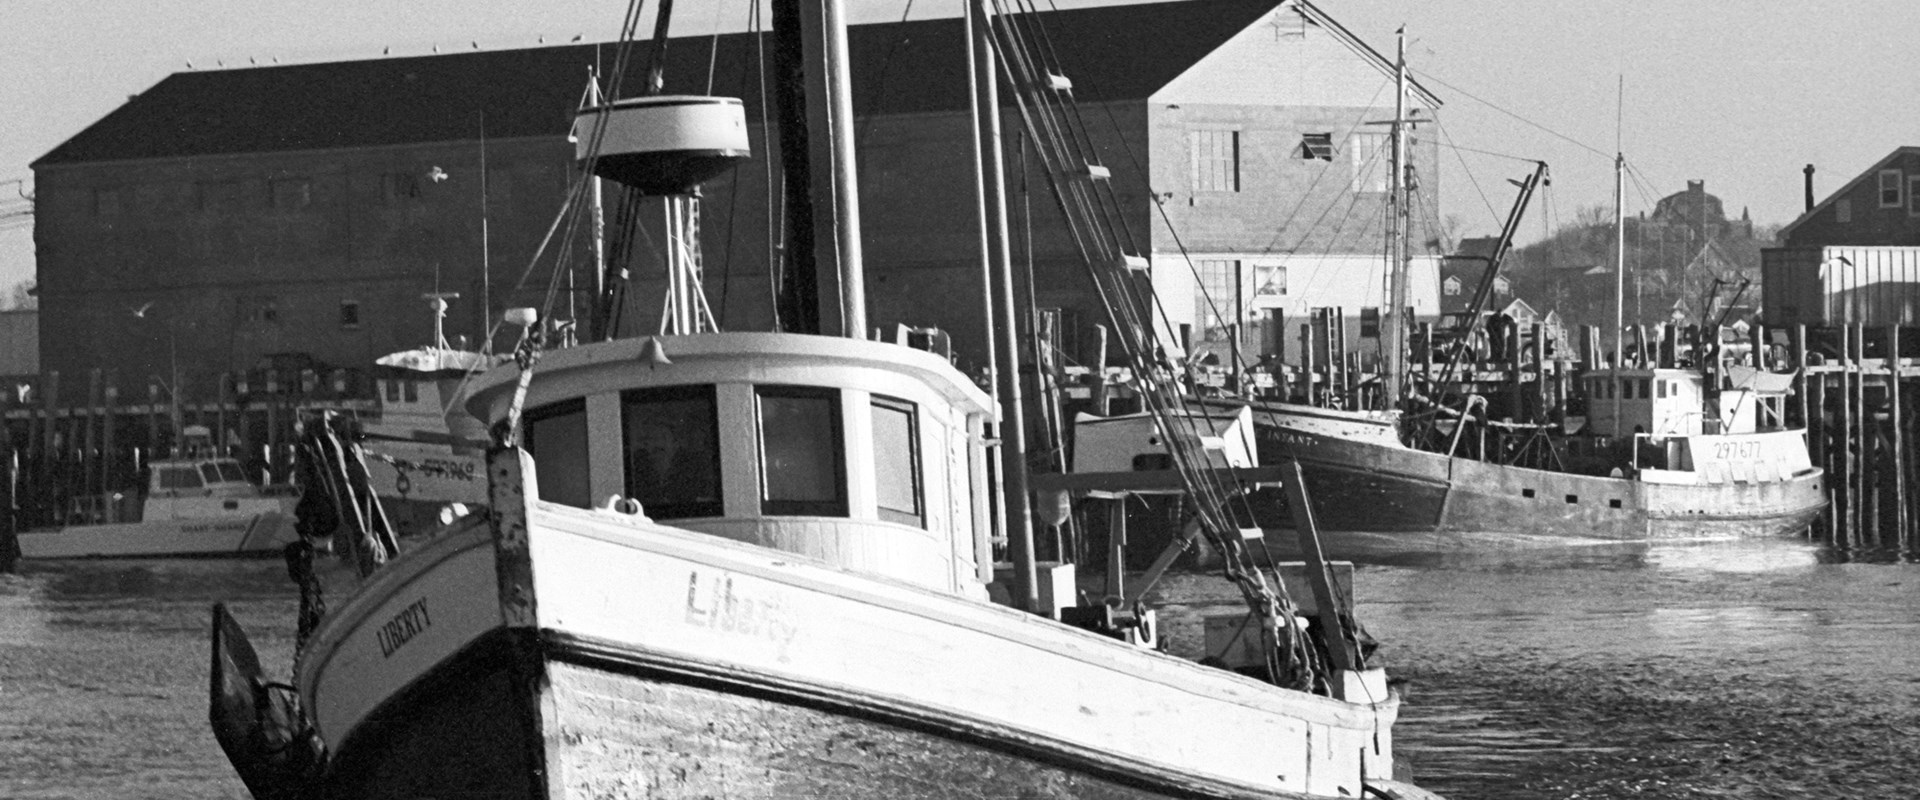 Liberty, a beautiful 1940 vintage wooden dragger owned by Norbert Macara, motors from Provincetown's MacMillan Wharf in a wash on morning sunlight across Cape Cod Bay. The large fish-packing plant on the wharf is gone today – as is the fishing fleet. <br />